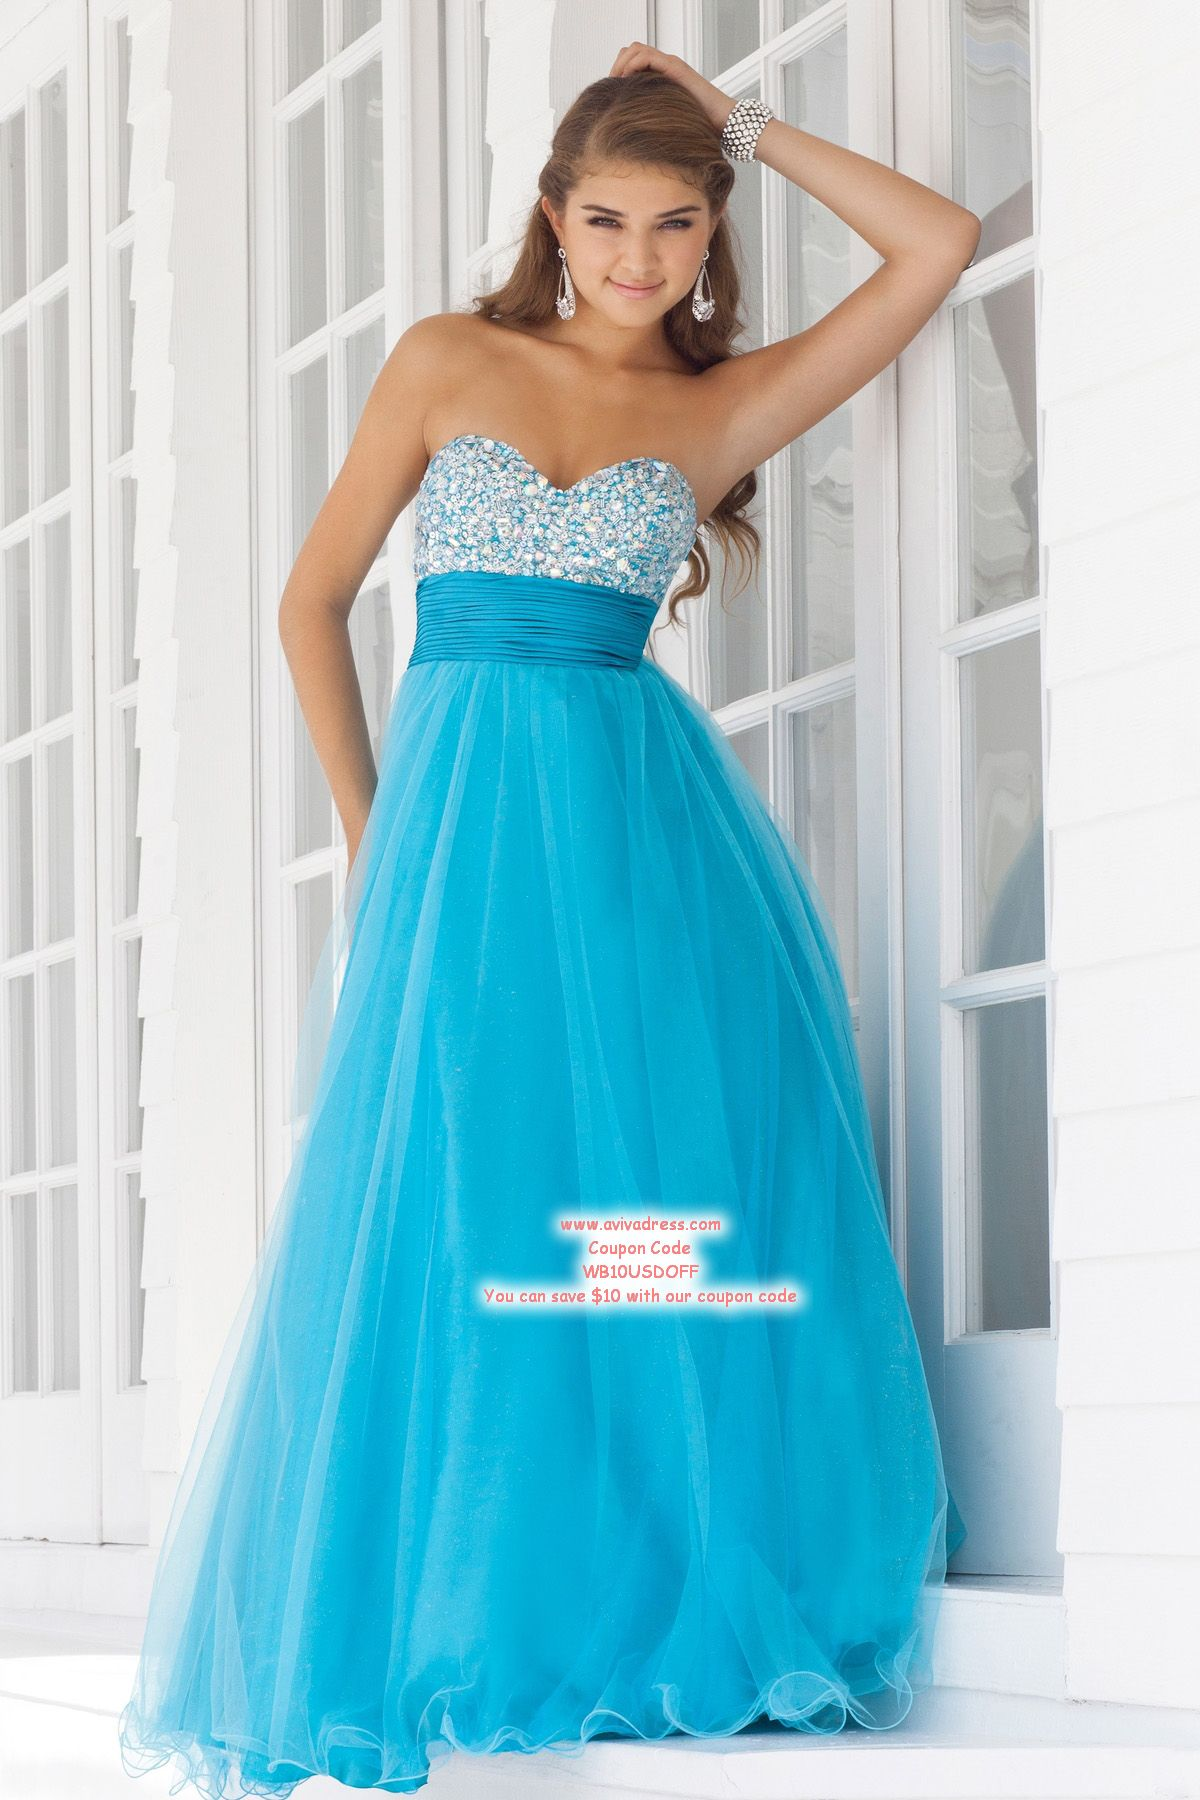 2013 Prom Dress <3 Love this for Senior Prom! | Pageant for Sammie ...